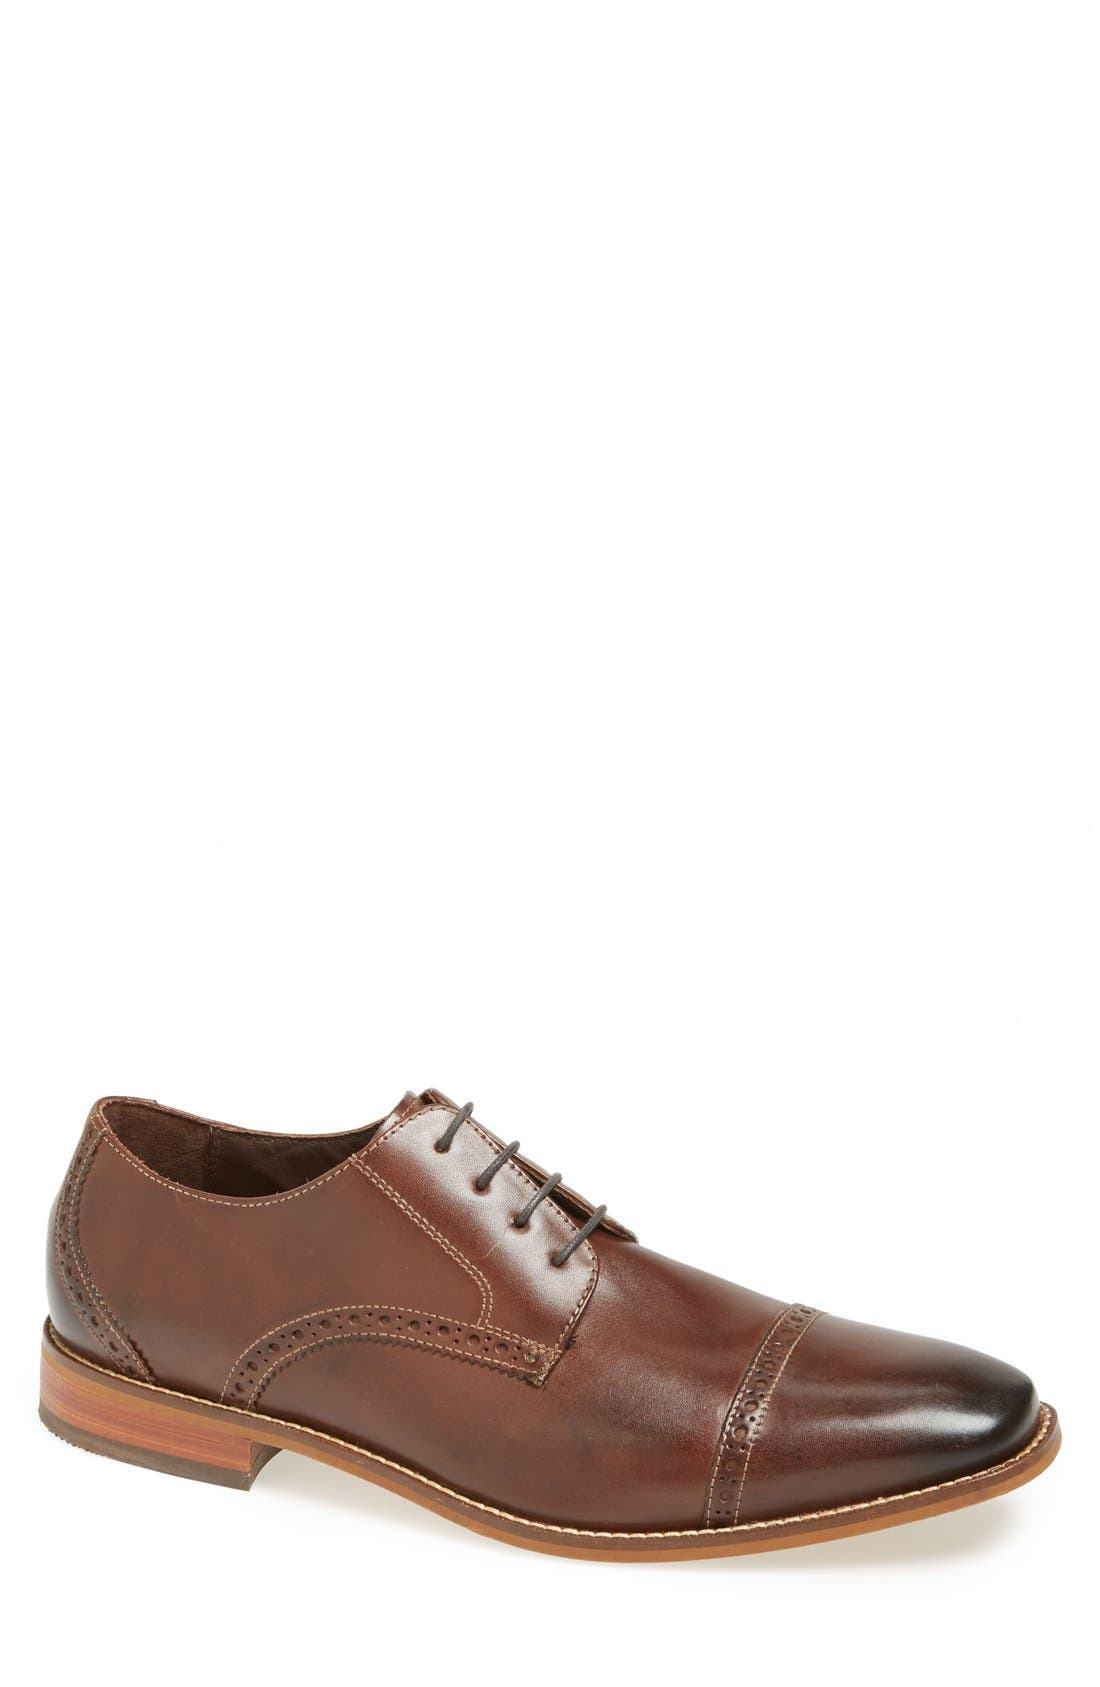 Main Image - Florsheim 'Castellano' Cap Toe Derby (Men)